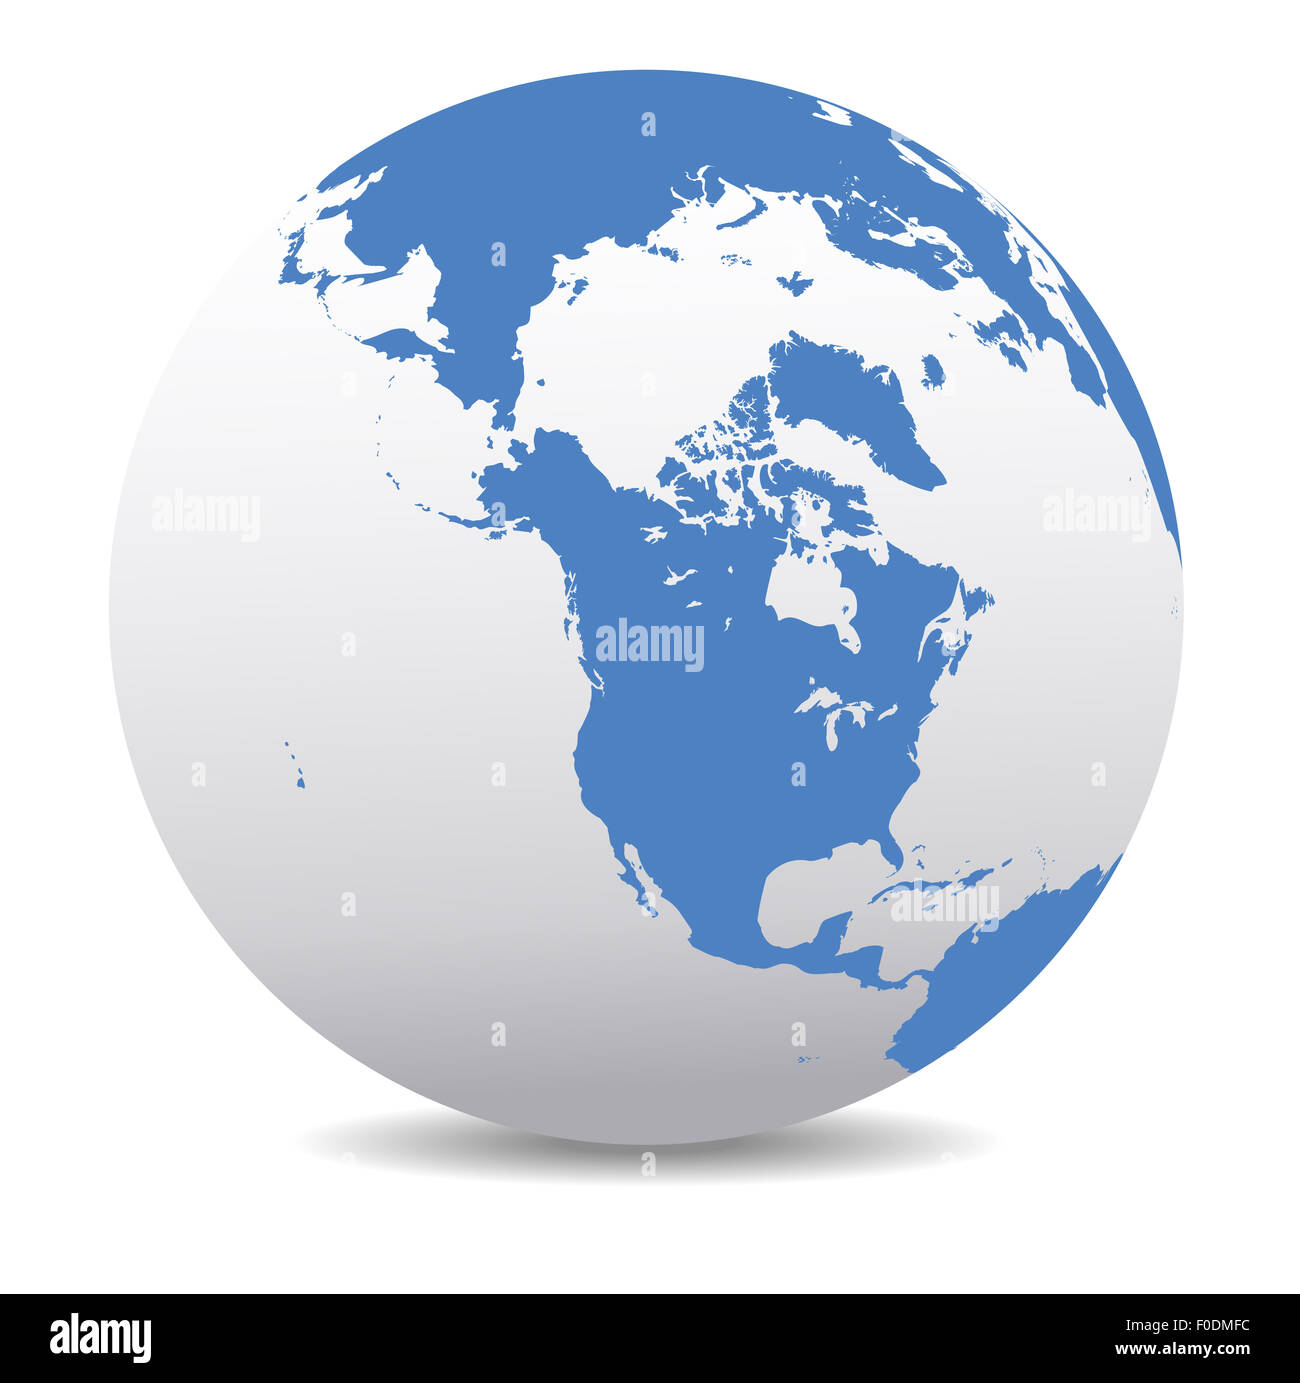 Map icon of the world globe north america usa stock photo 86353328 map icon of the world globe north america usa gumiabroncs Images